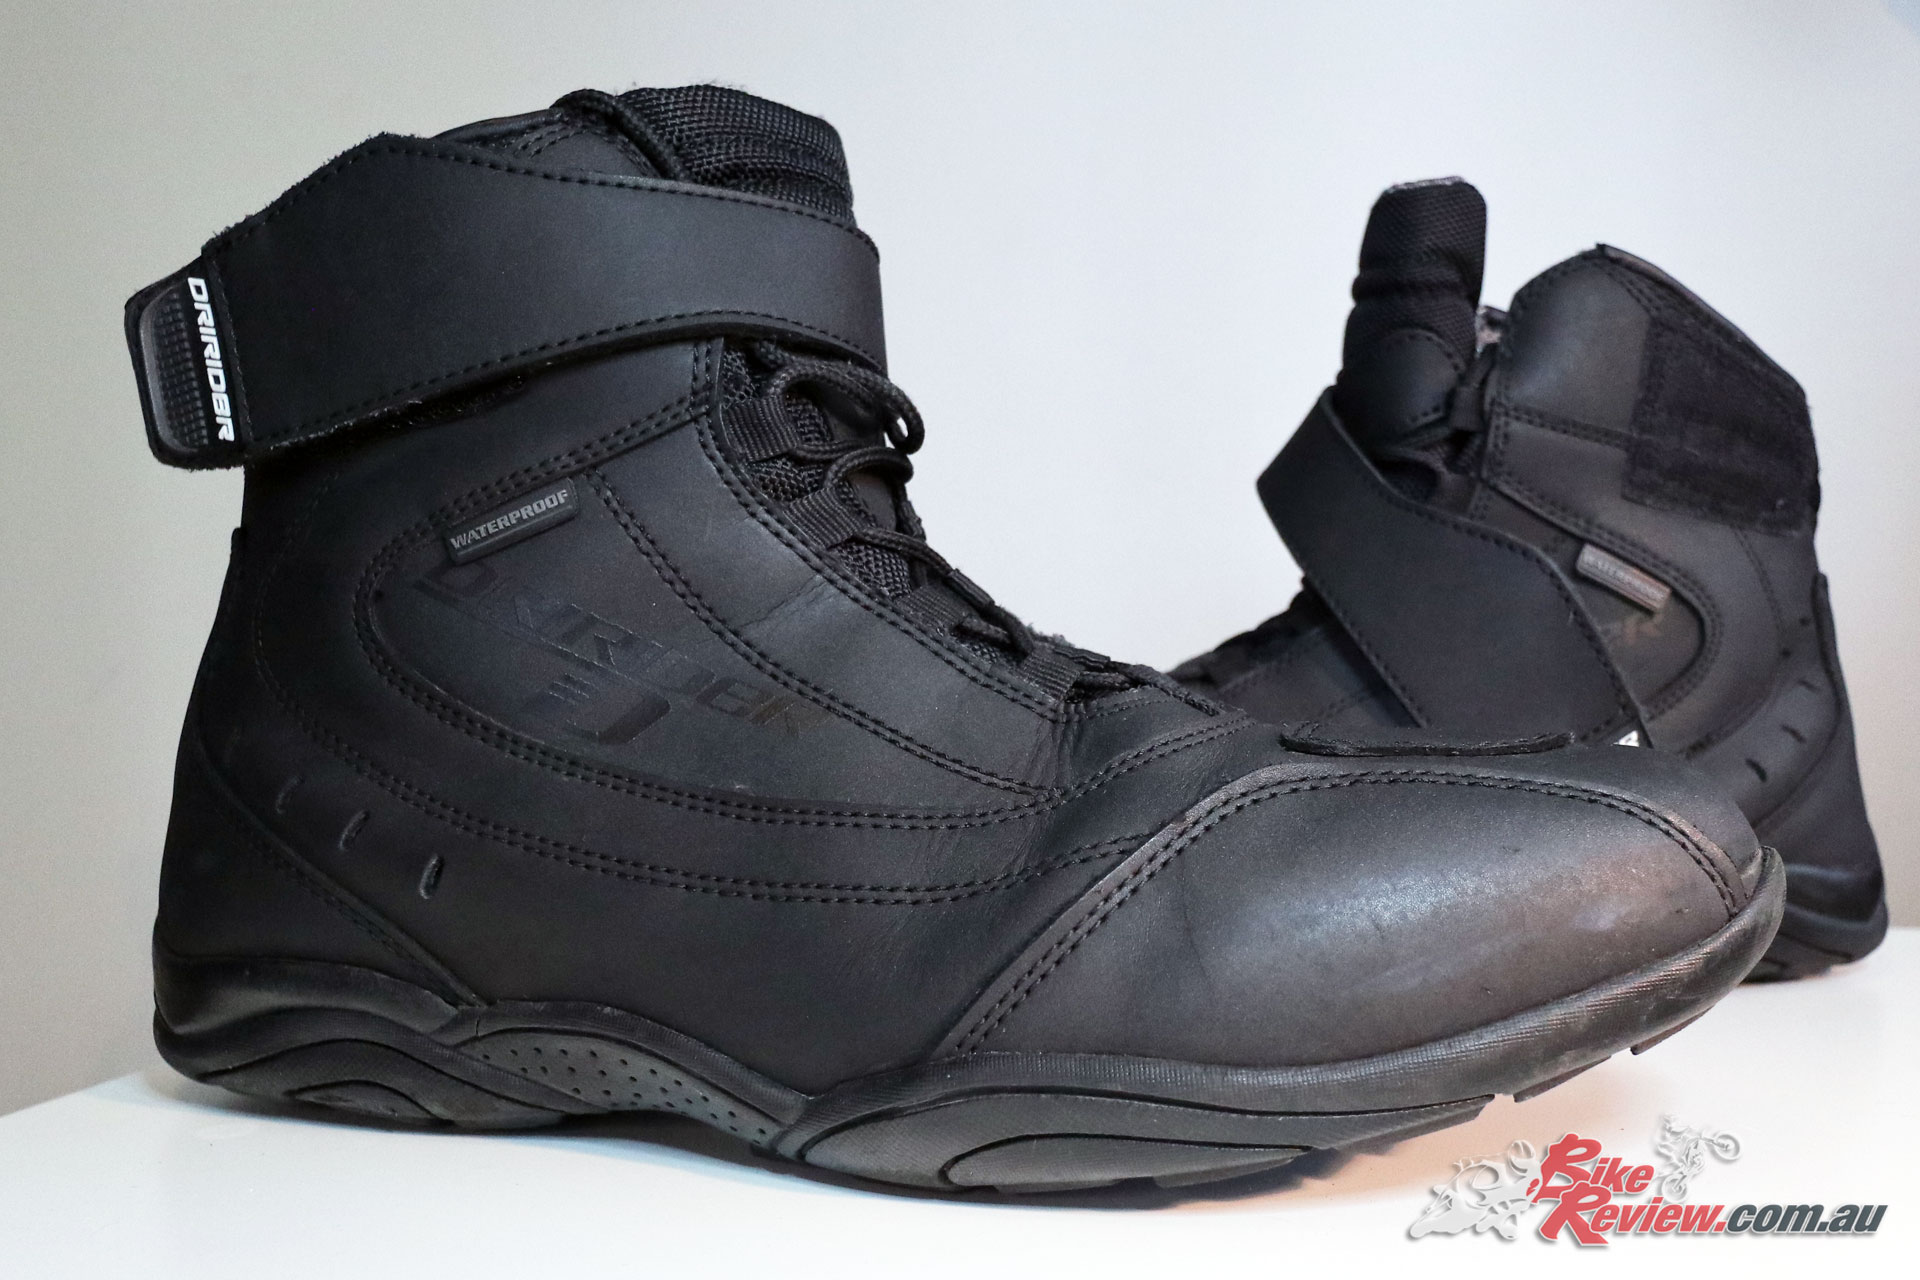 The boot sole offers strong grip and is showing no signs of wear despite daily riding.